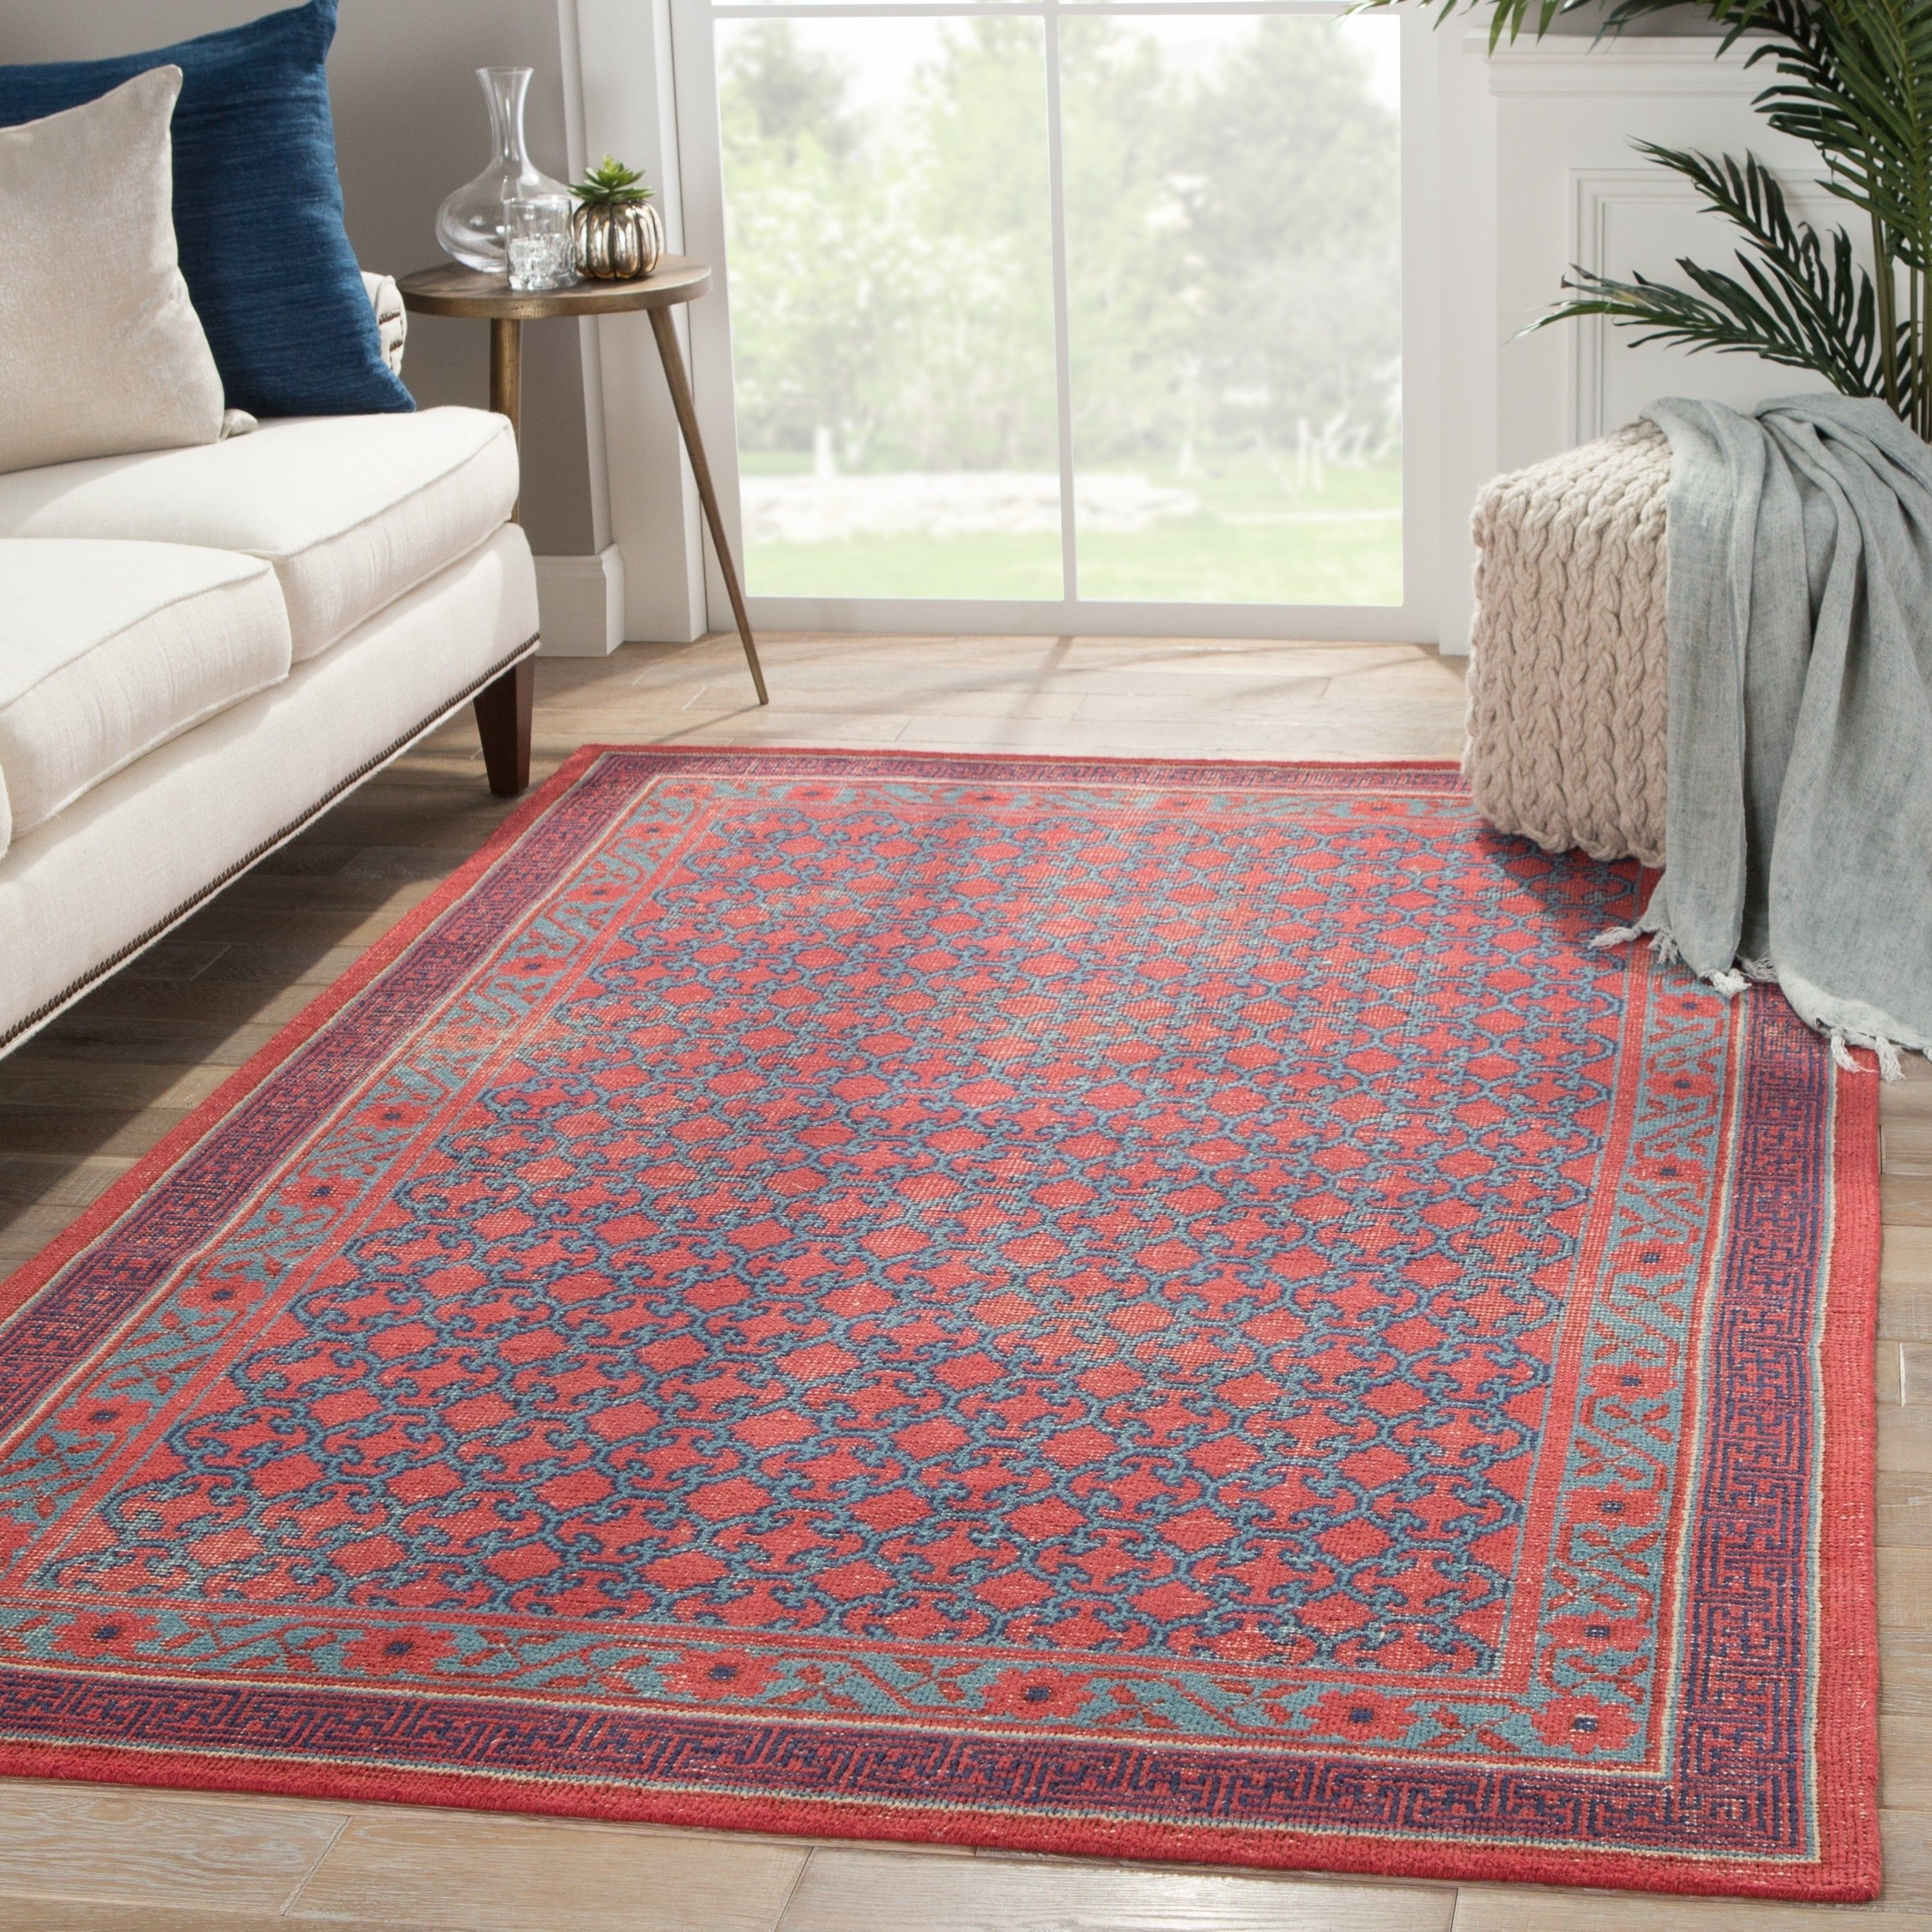 Juniper Home Hand-Knotted Borders Red Area Rug (5' X 8') ...